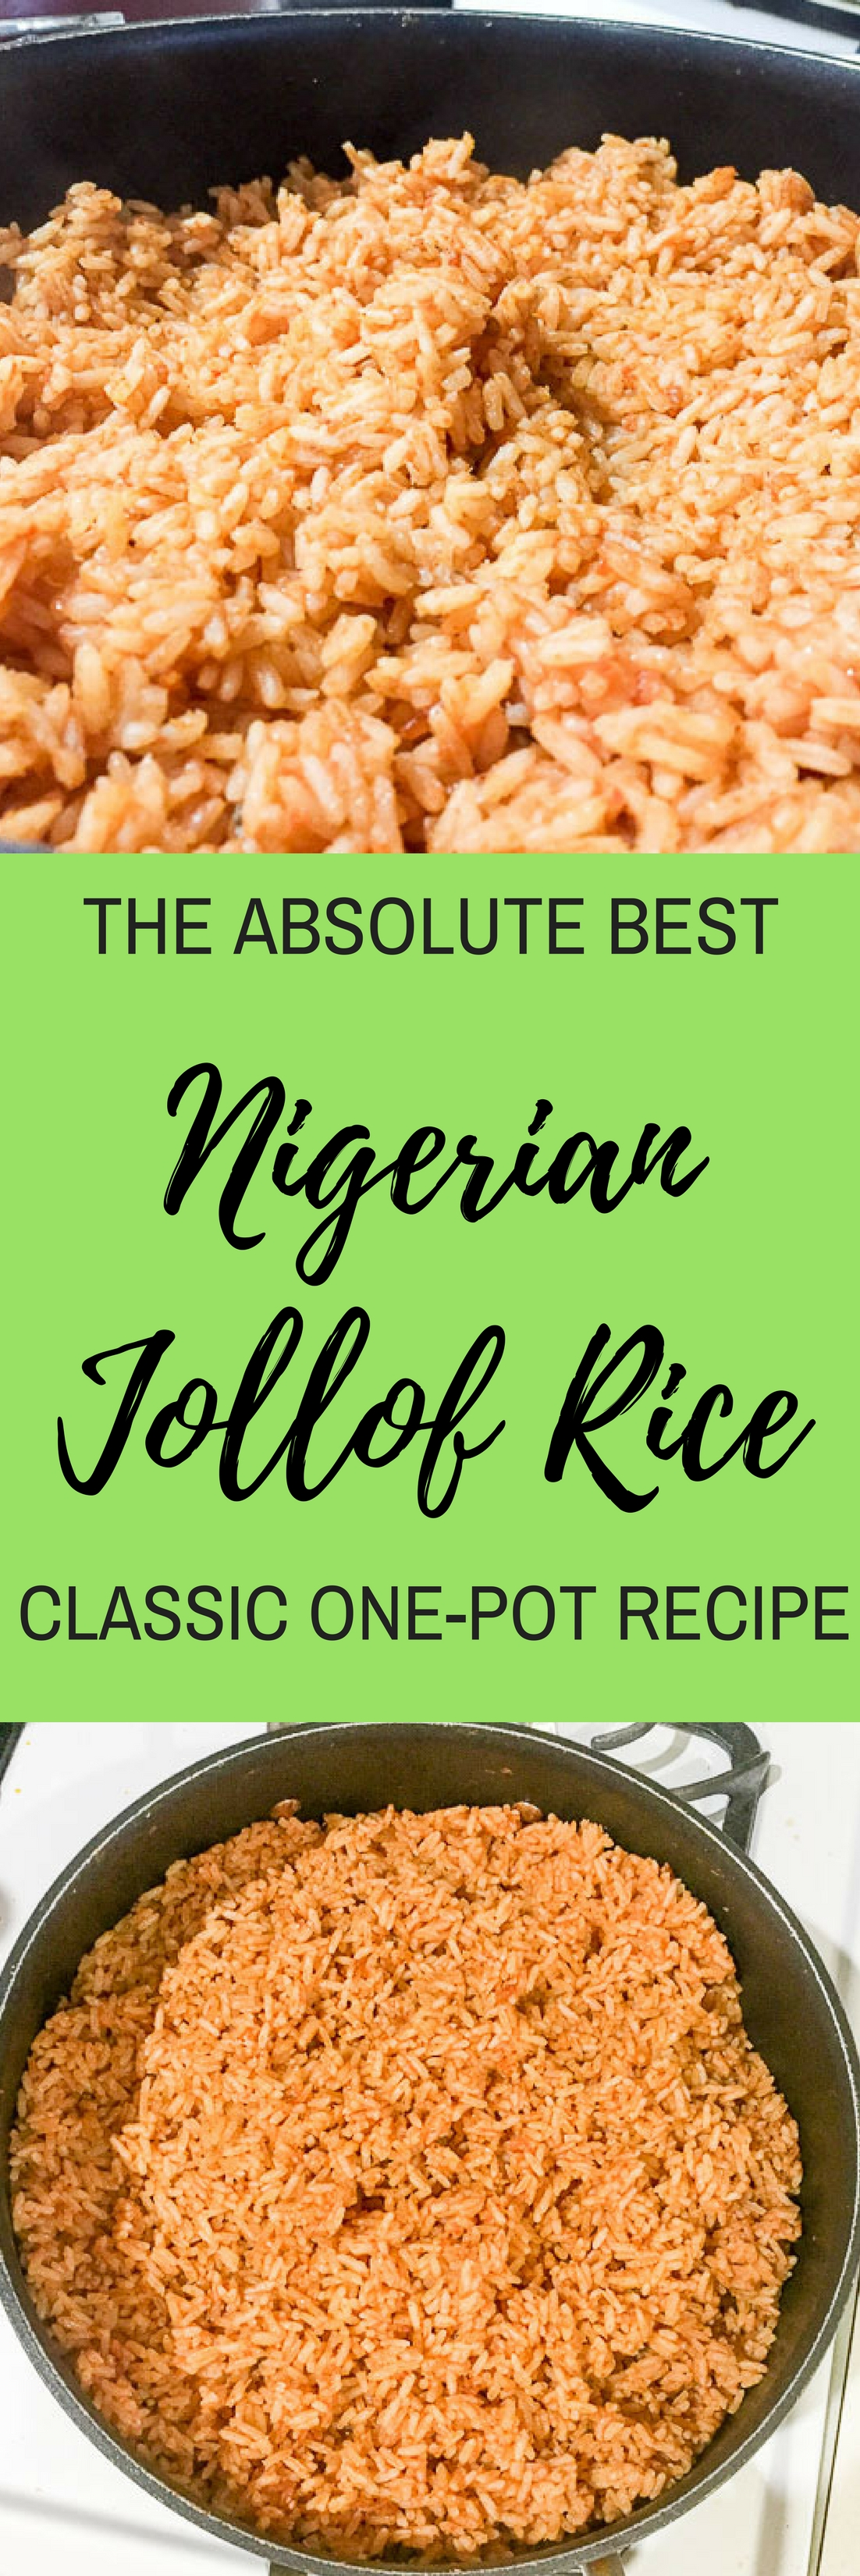 Jollof rice is an extremely popular and flavorful one-pot West African dish with a bit of controversy surrounding which country creates the best version. Our family's Nigerian jollof rice recipe will put all disputes to rest! Recipe by Dash of Jazz